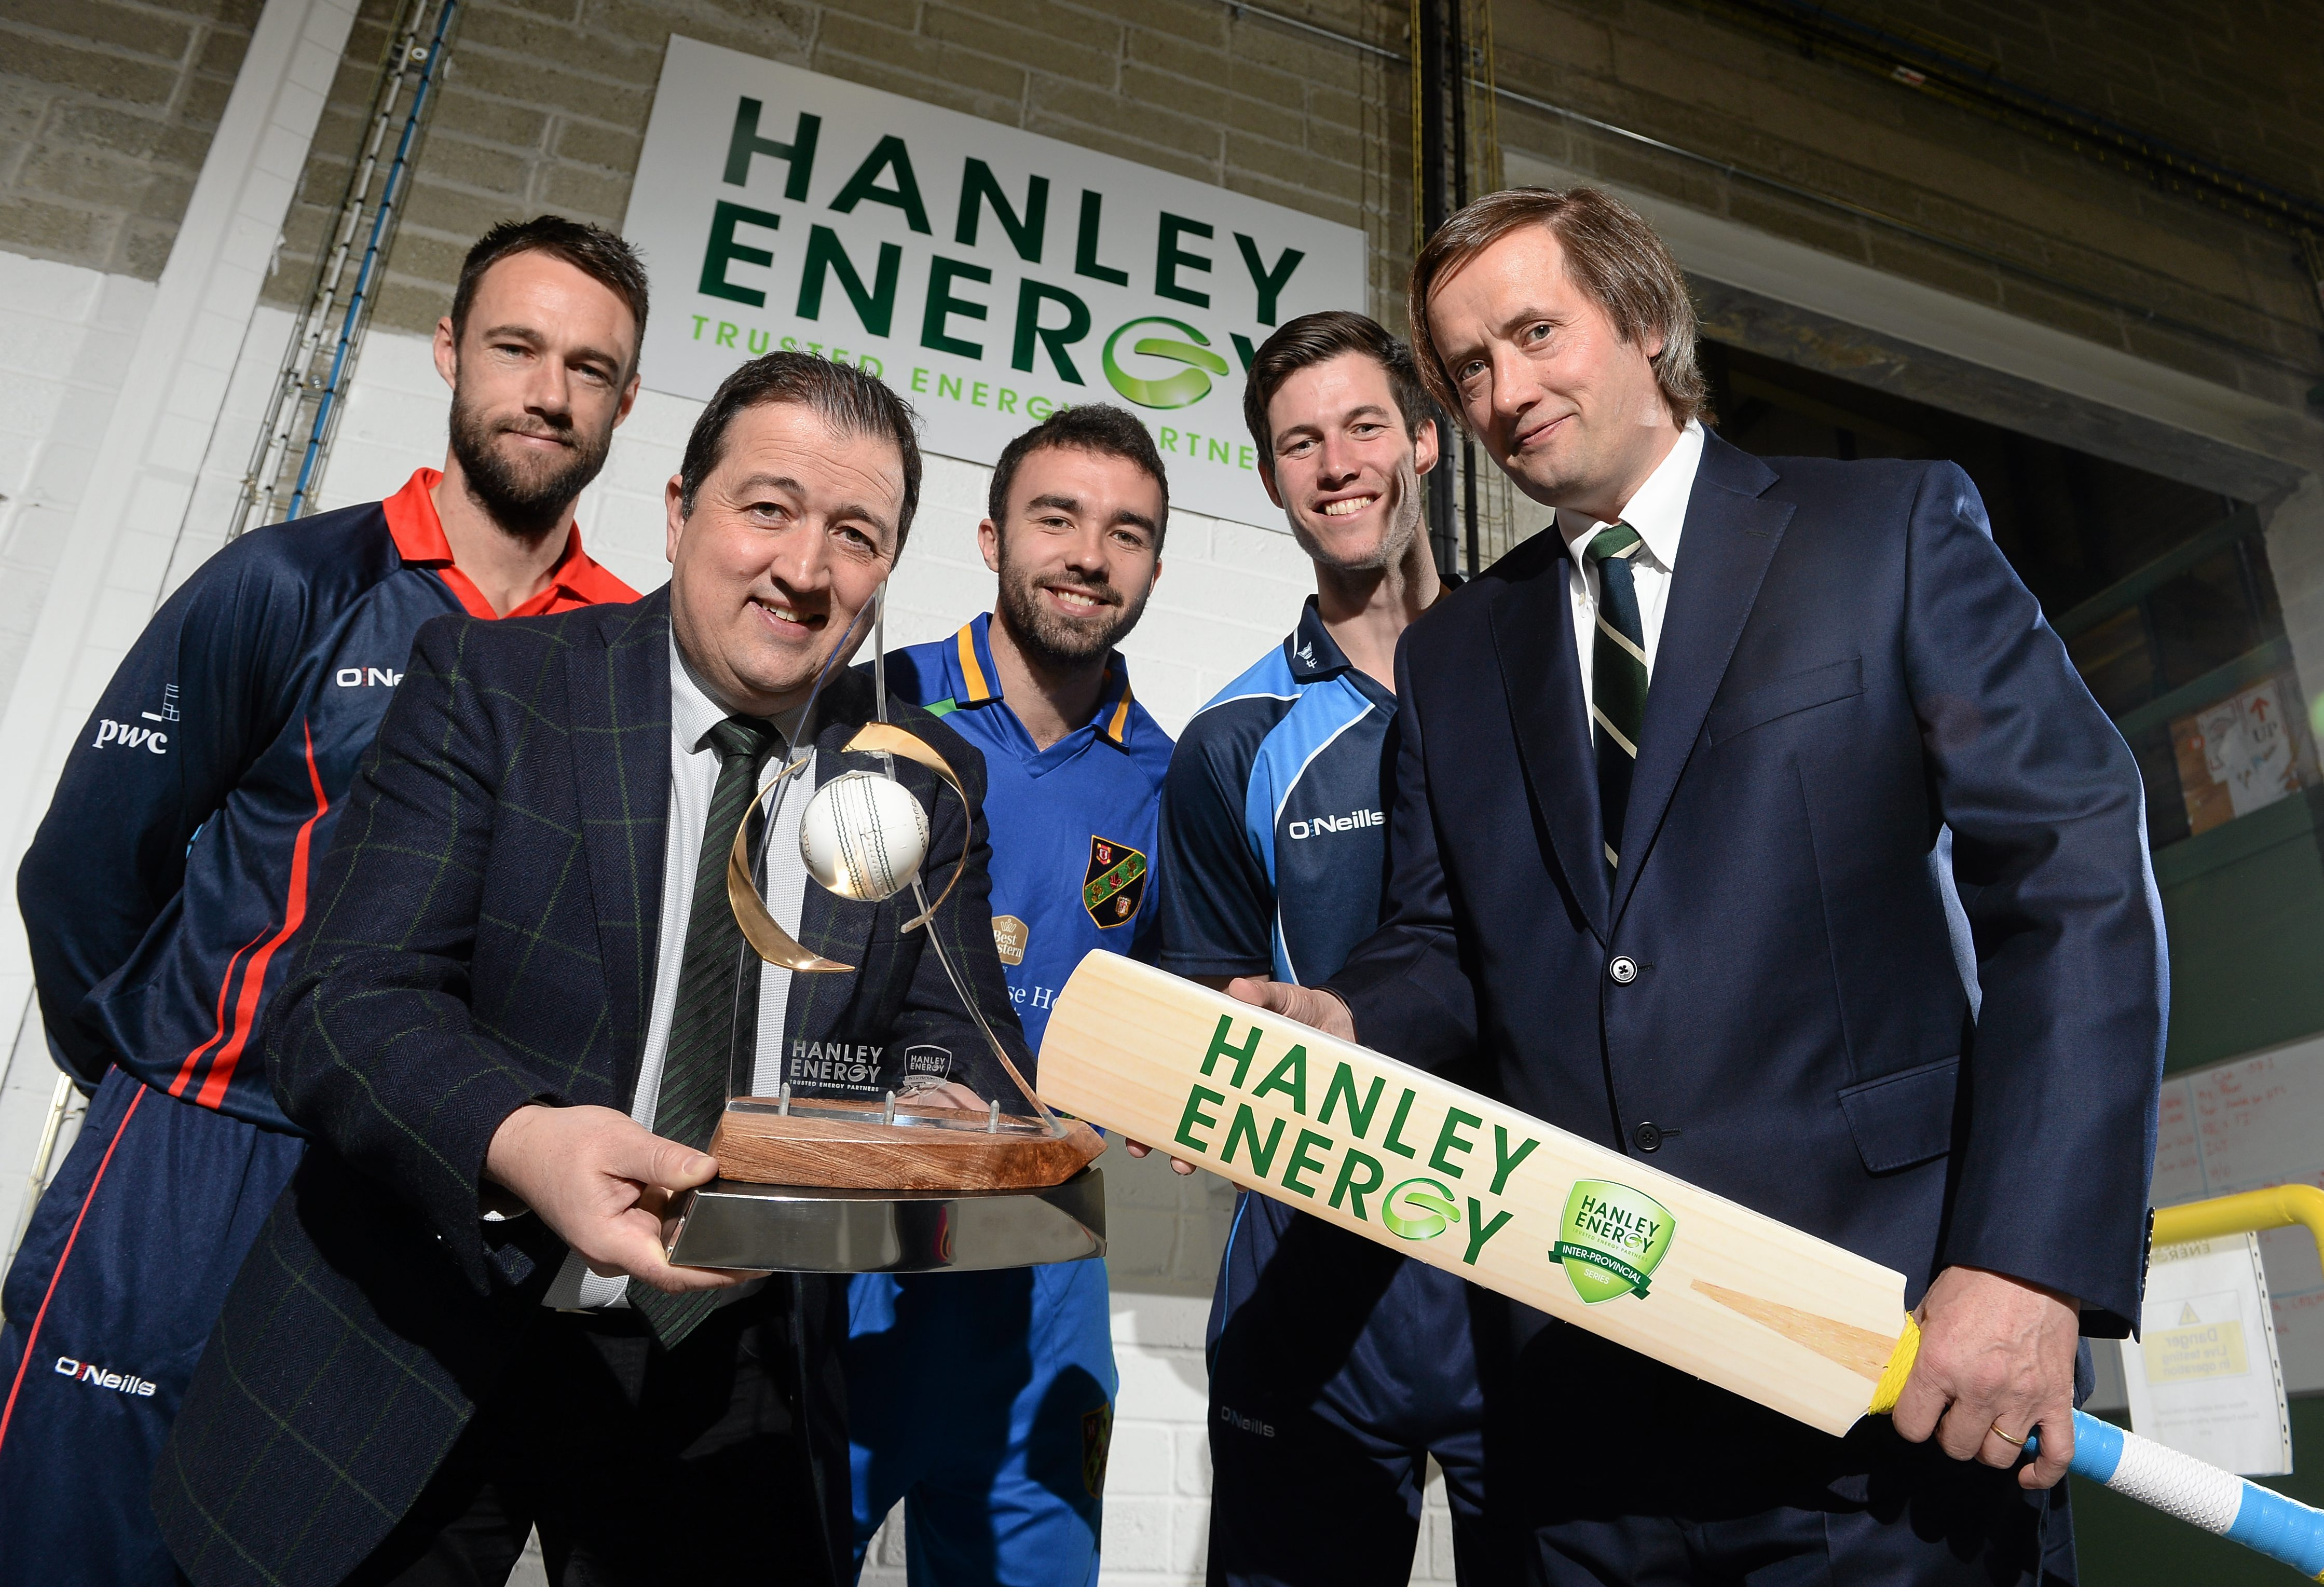 Northern Knights' Nigel Jones, Dennis Nordon MD Hanley Energy,  North West Warriors' Stuart Thompson,  Leinster Lightning's George Dockrell and Clive Gilmore, CEO Hanley Energy at the launch of the 2016 Hanley Energy Inter-Provincial Series at Hanley Energy's headquarters in Stamullen, Co. Meath.